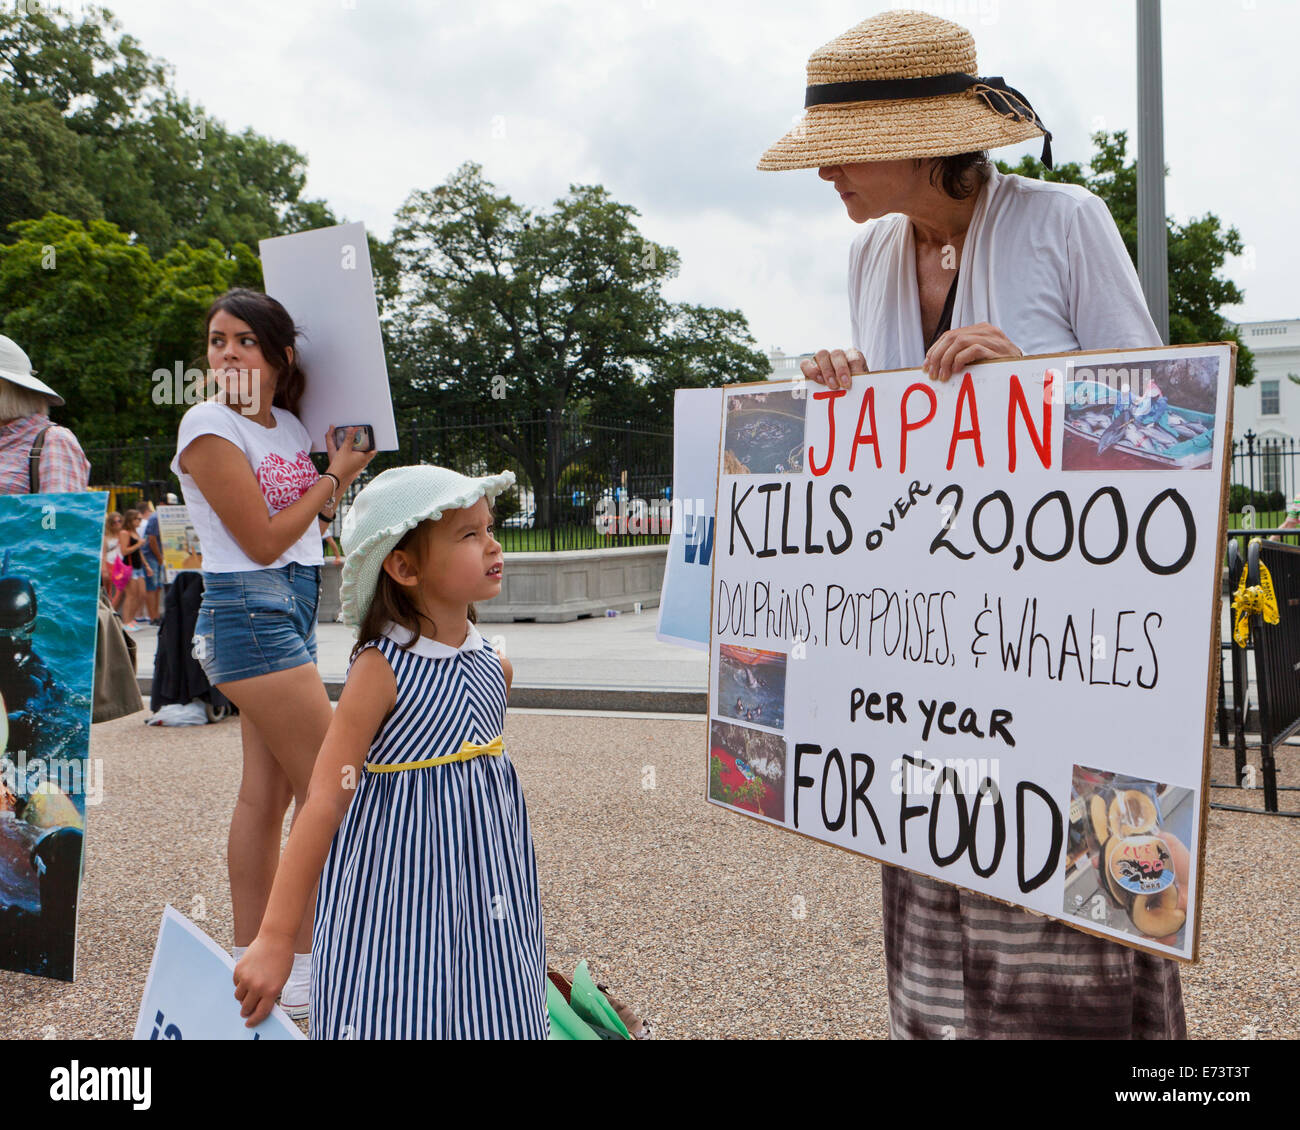 PETA members protesting in front of the White House against Japanese dolphin fishing - Washington, DC USA - Stock Image